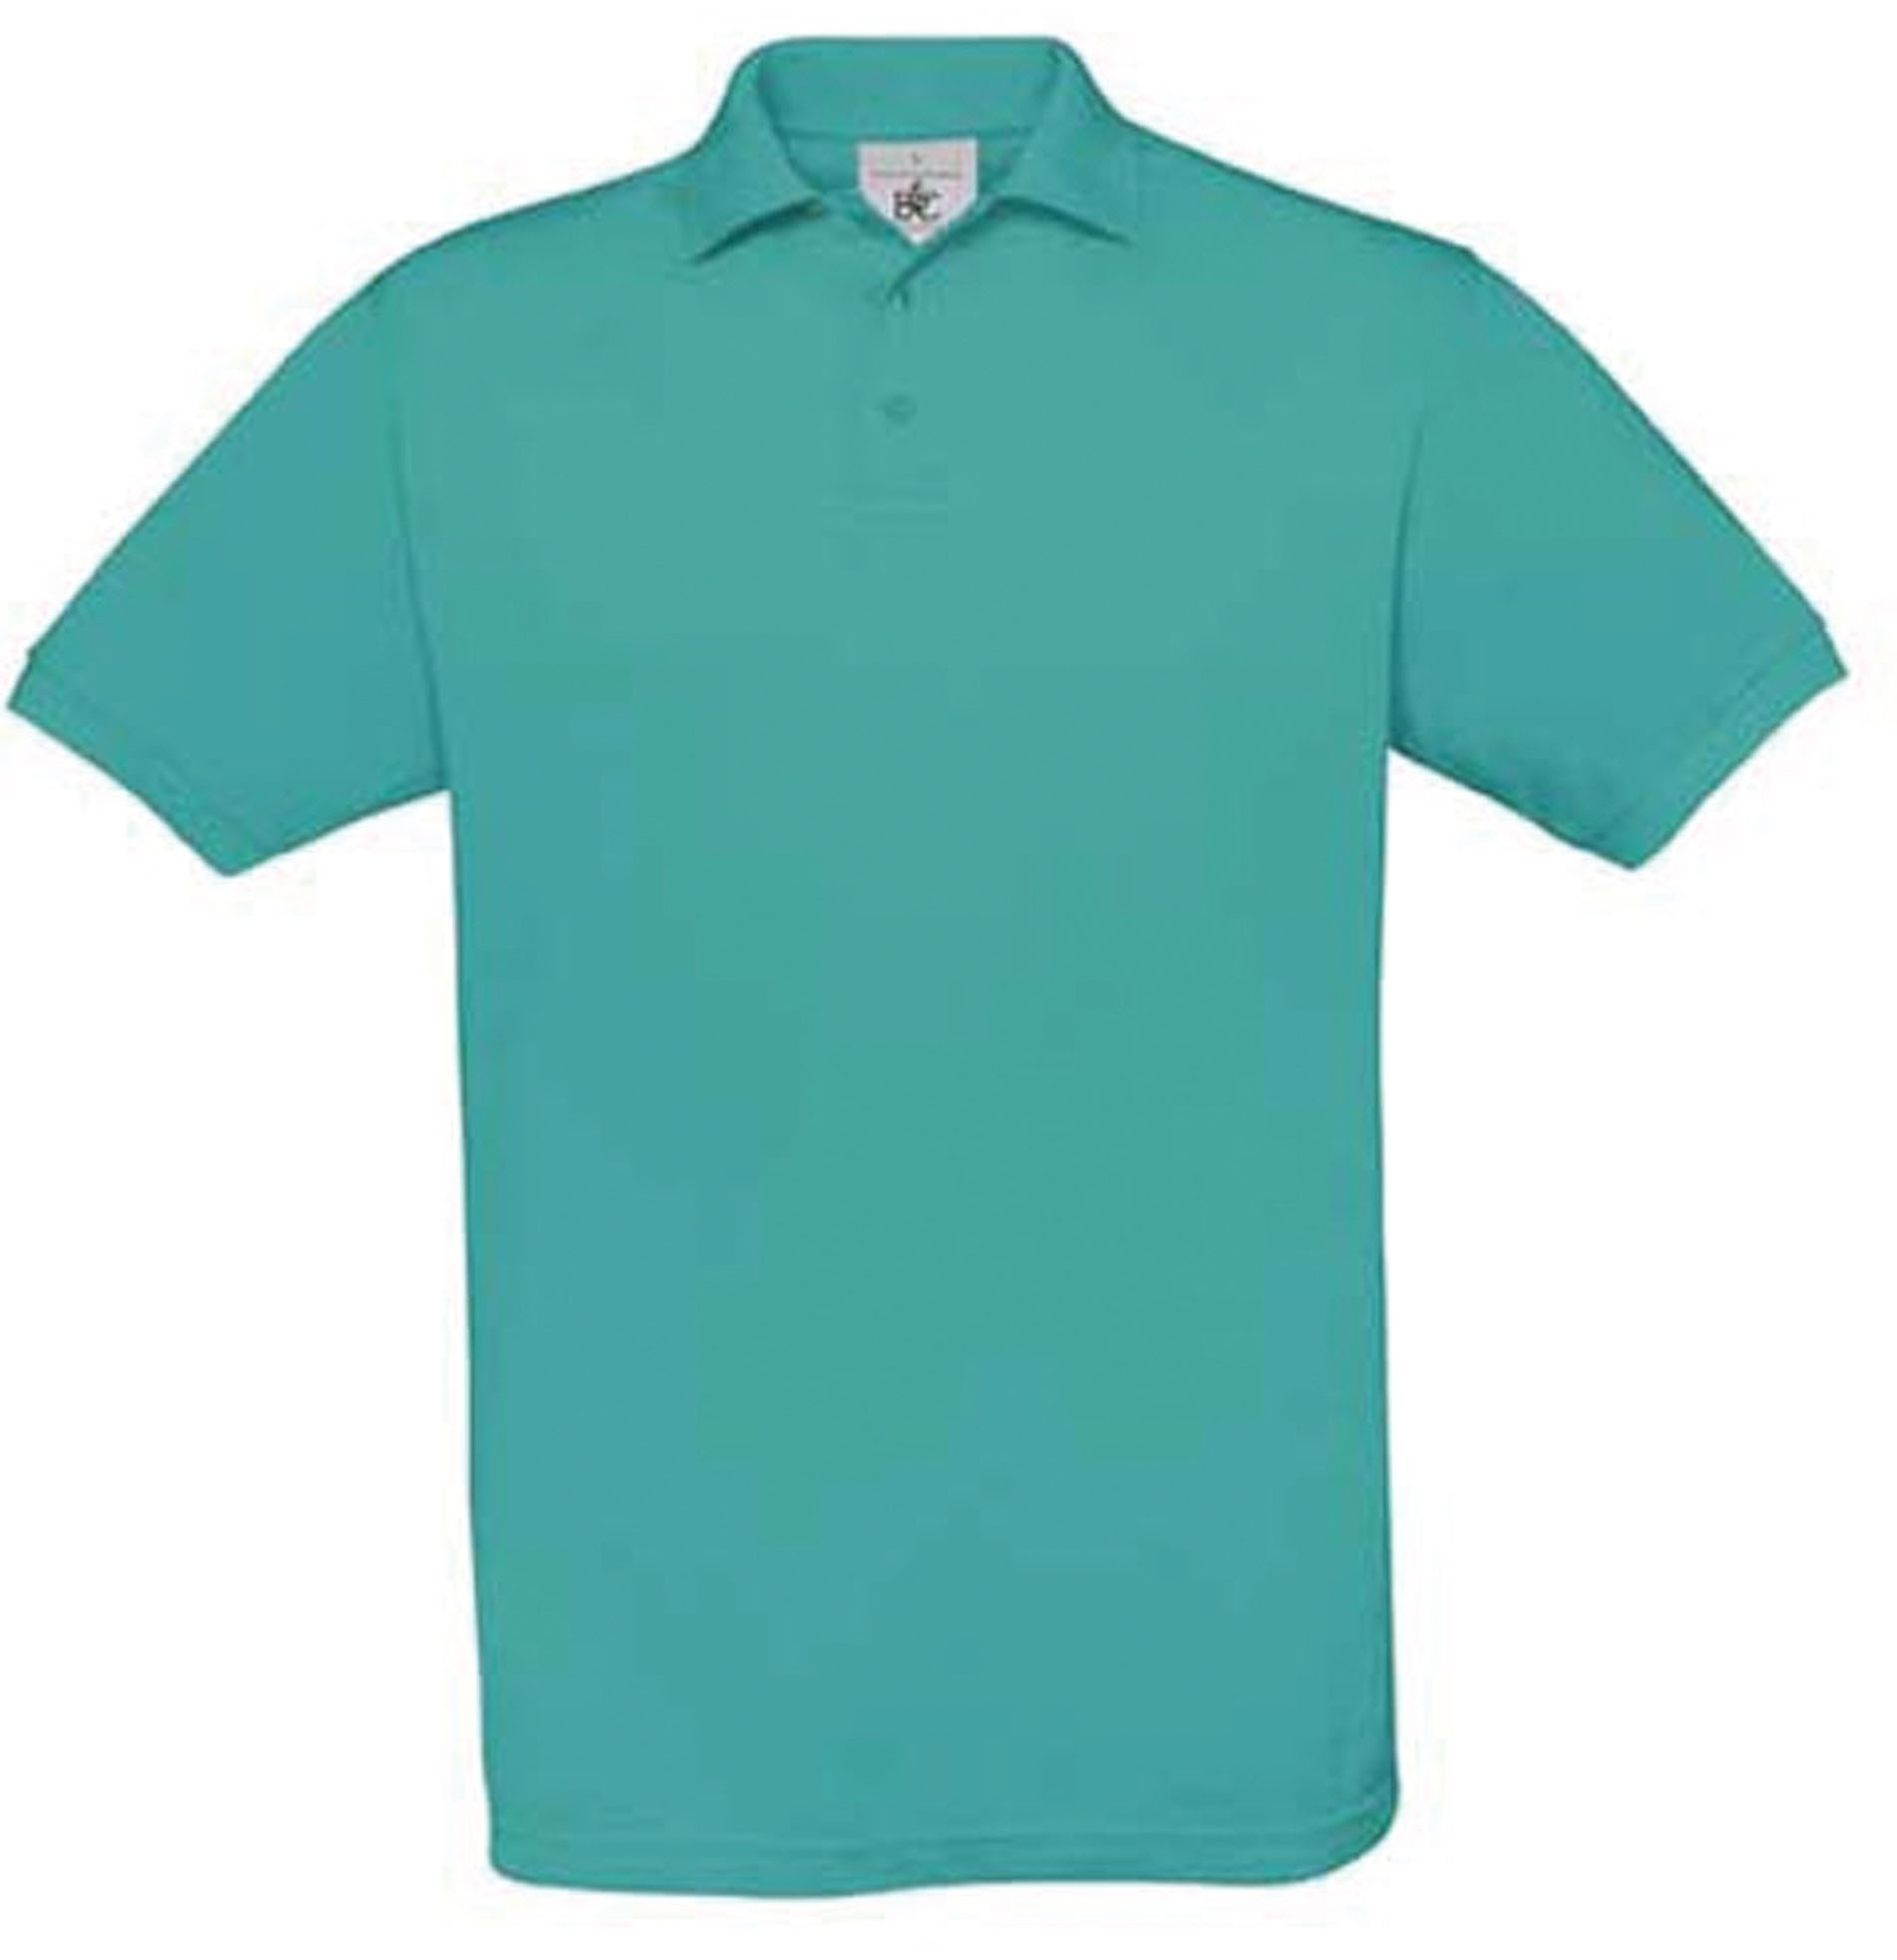 POLO HOMME SAFRAN Real Turquoise Bleu